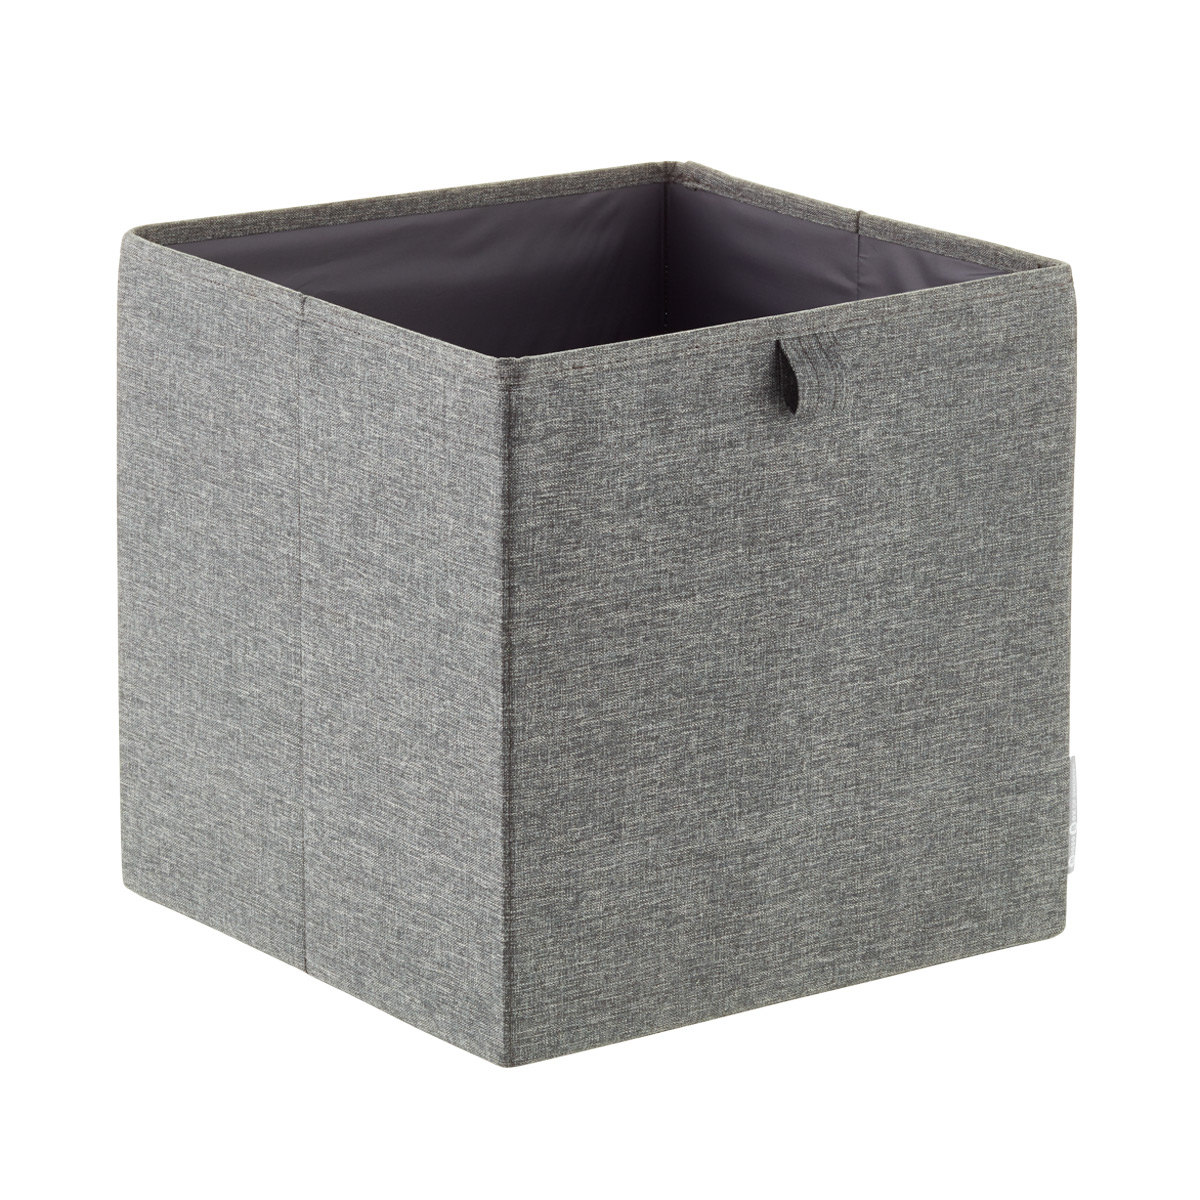 Bigso Grey Fabric Storage Cube  sc 1 st  The Container Store & Baskets: Wicker Baskets Decorative Baskets u0026 Storage Bins | The ...